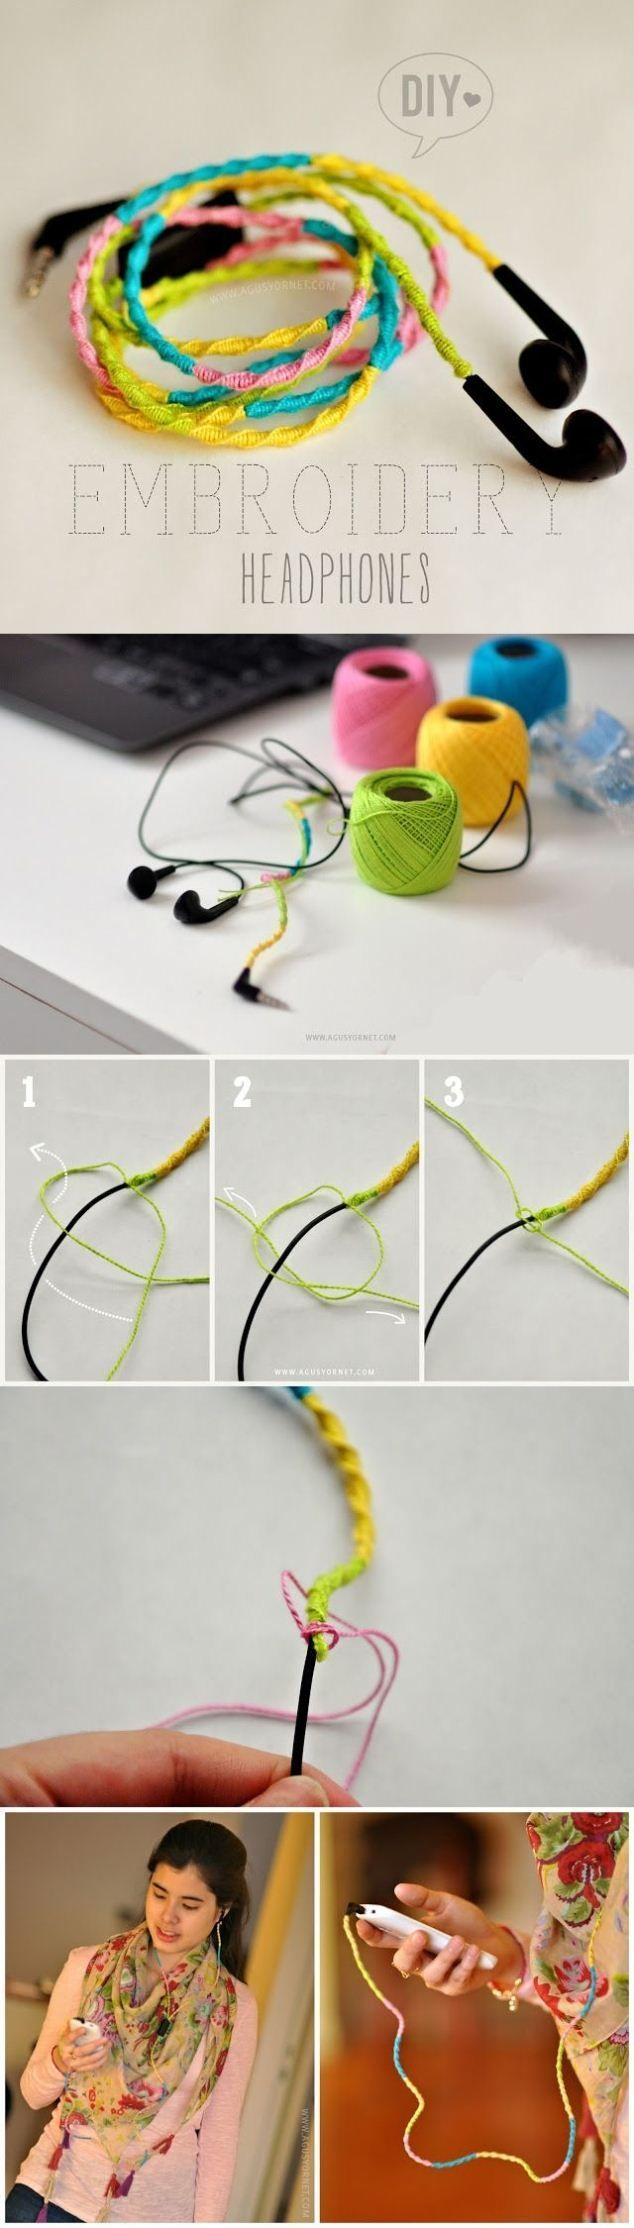 Pin by Ivana Zambrano on DIY >>> awesome. i should try this